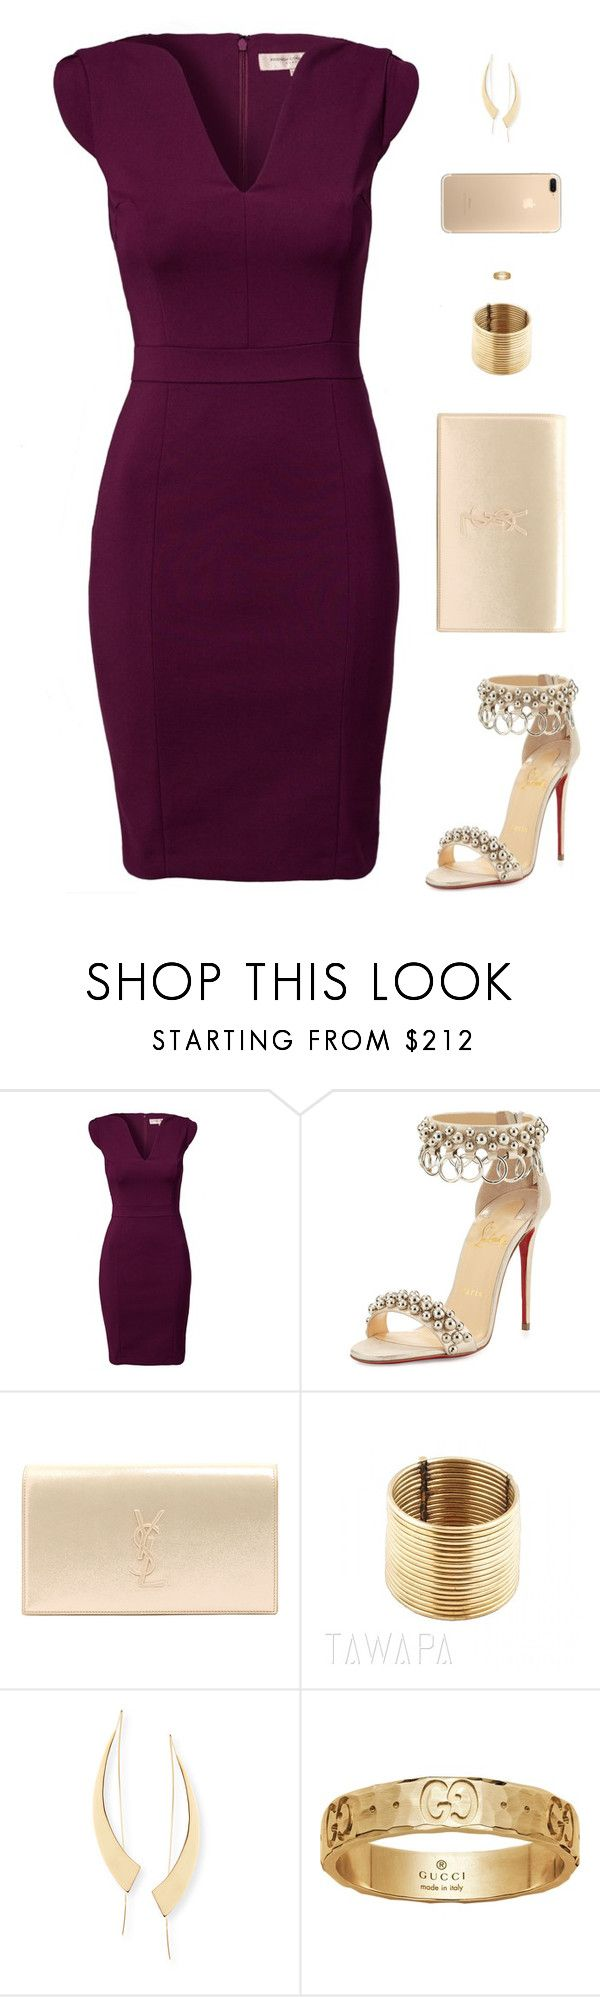 """Sin título #4565"" by mdmsb on Polyvore featuring moda, French Connection, Christian Louboutin, Yves Saint Laurent, Lana y Gucci"